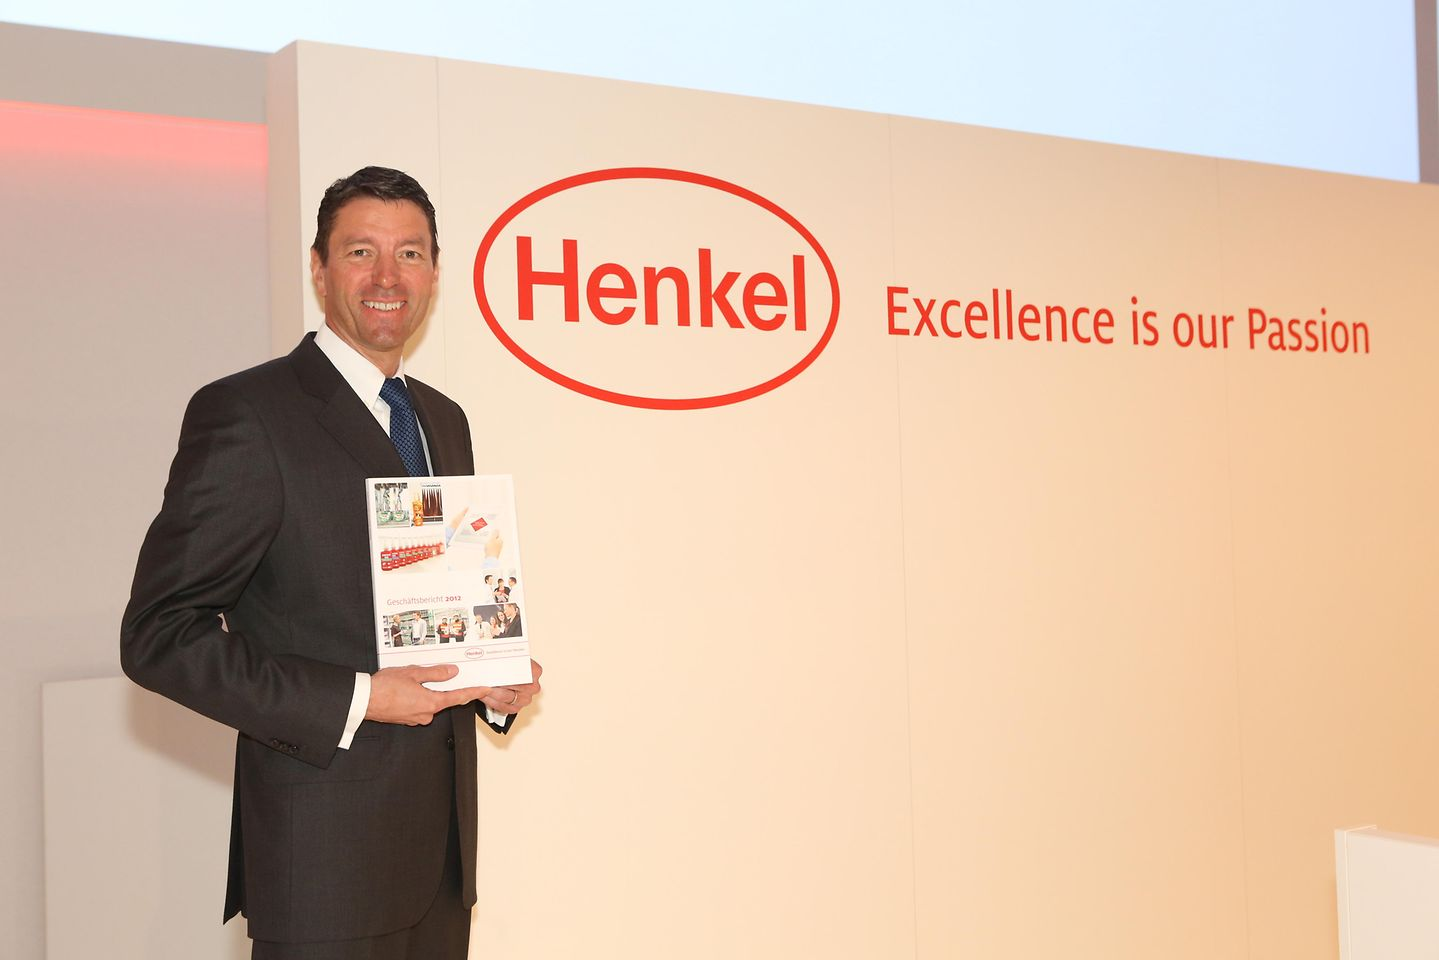 Henkel CEO Kasper Rorsted